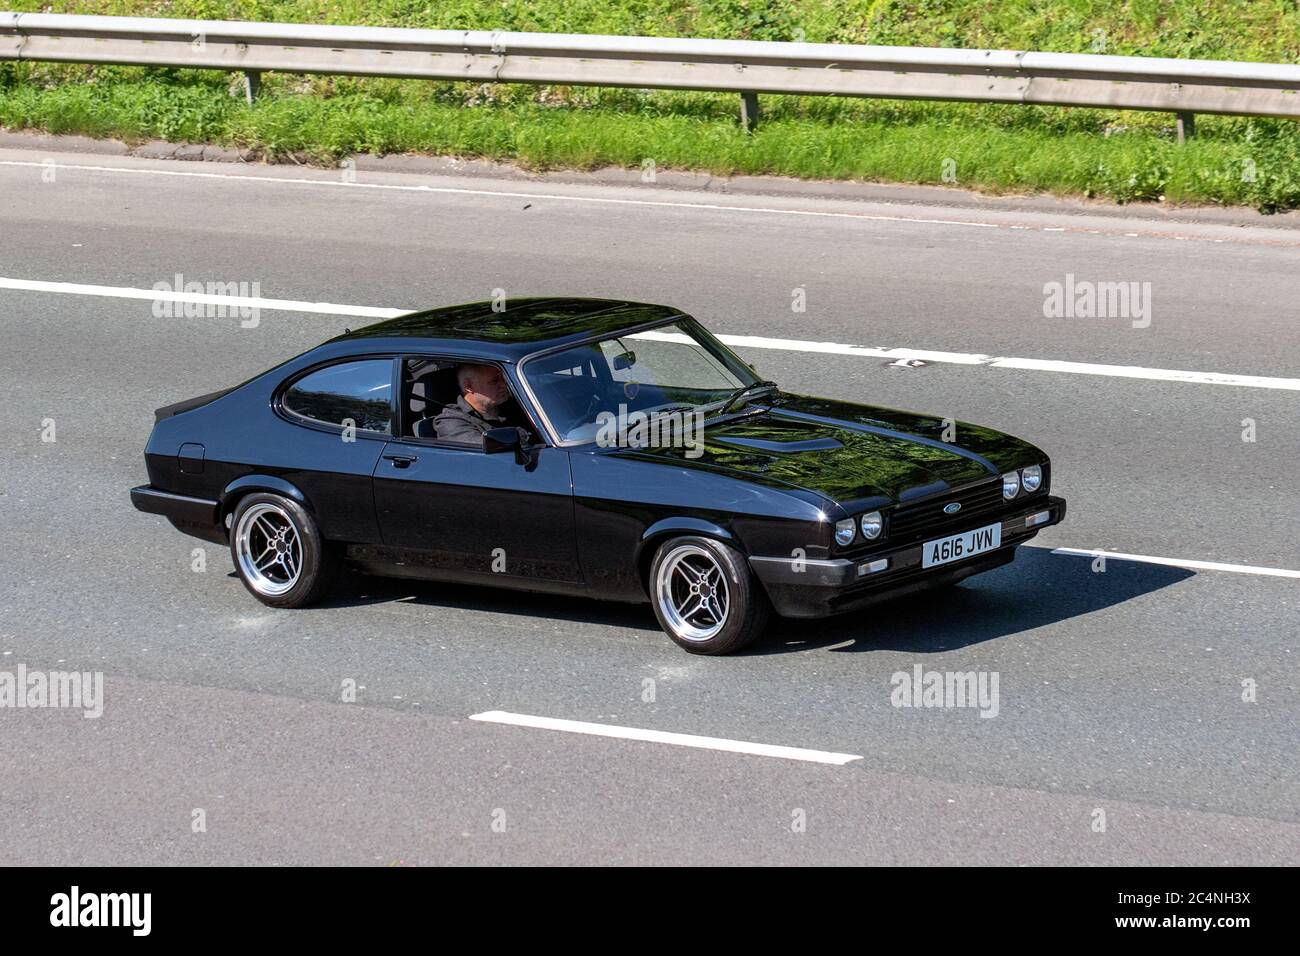 A616jvn 1984 Black Ford Capri Ls 5spd Classic Sports Cars Cherished Veteran Restored Old Timer Collectible Motors Vintage Heritage Old Preserved Collectable Vehicular Traffic Moving Vehicles Cars Driving Vehicle On Uk Roads